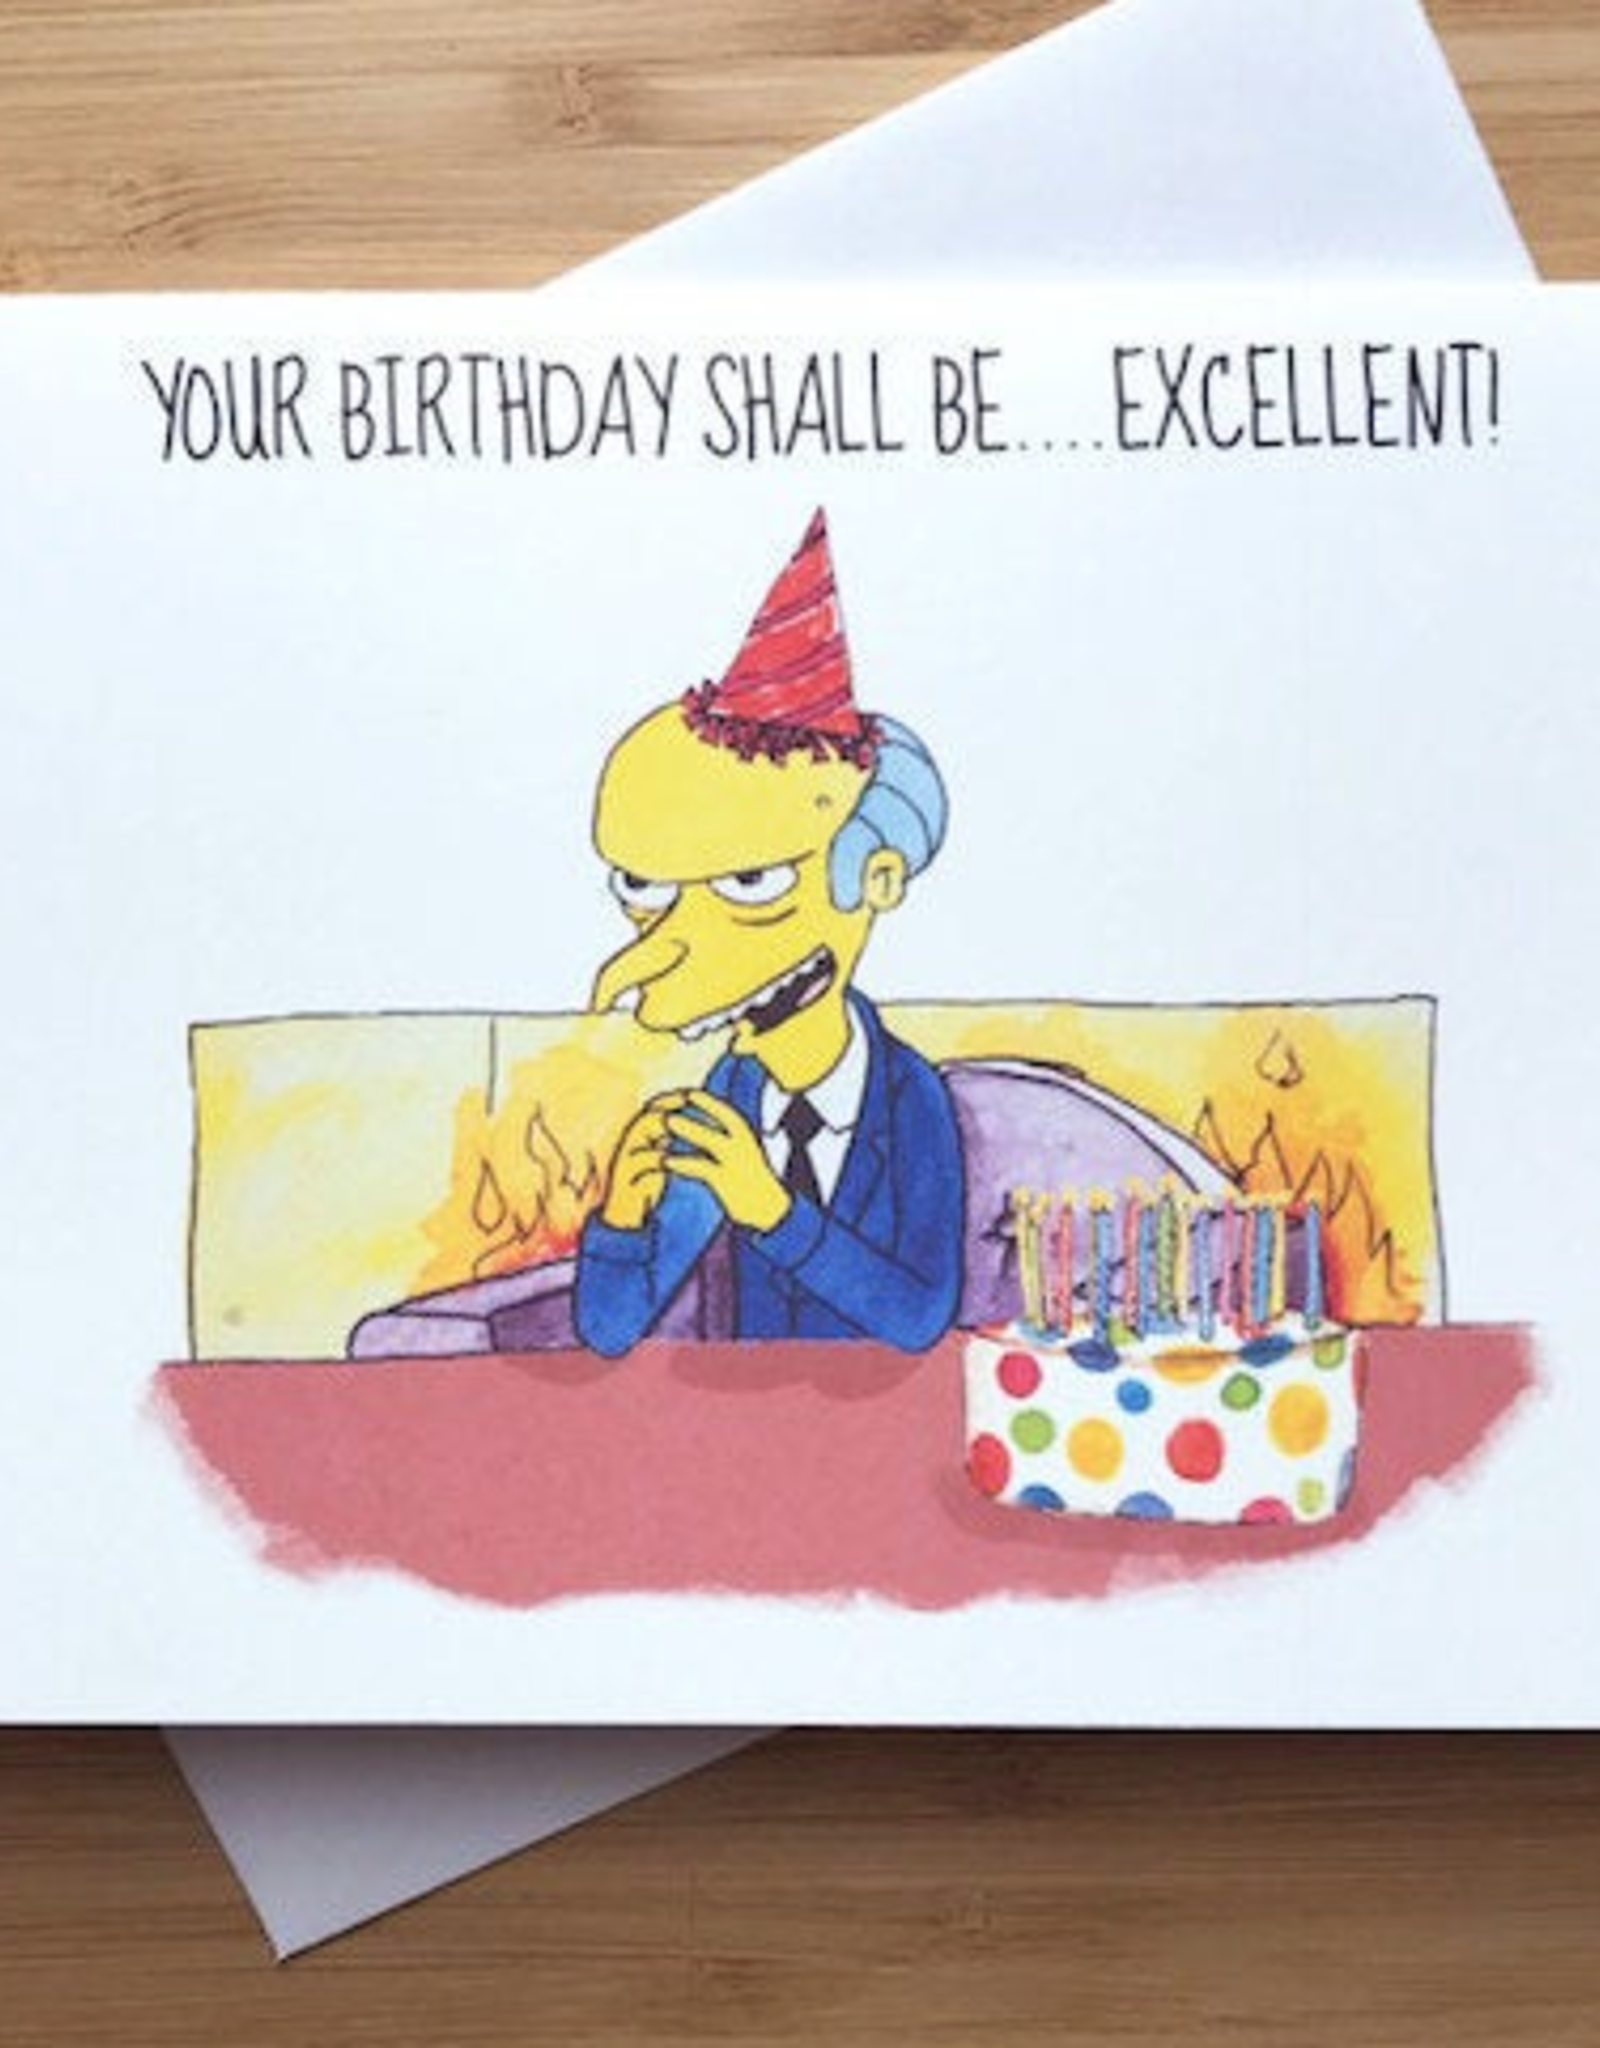 Mr. Burns Excellent Birthday (Simpsons) Greeting Card